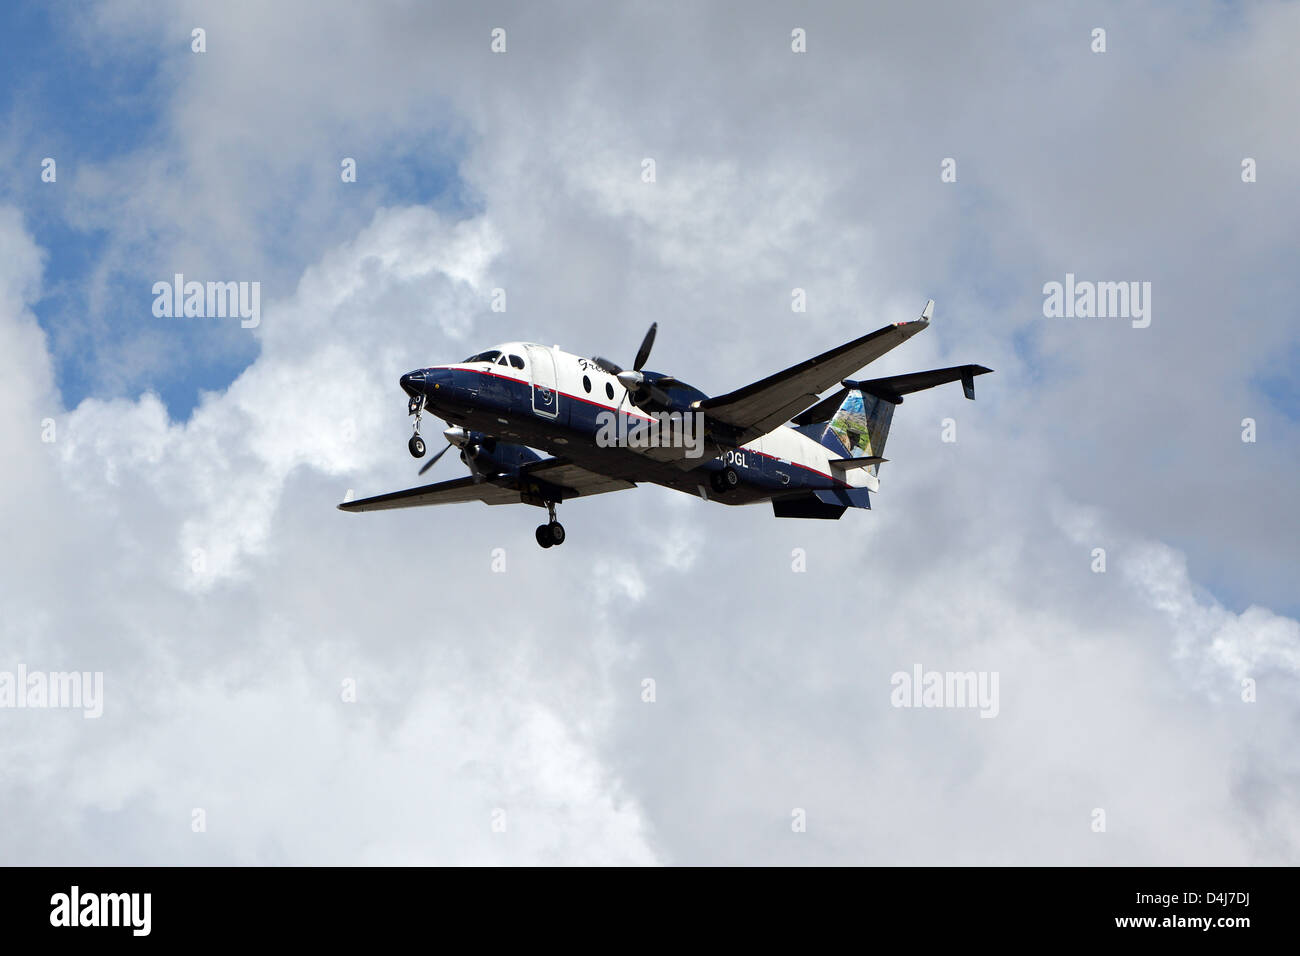 LOS ANGELES, CALIFORNIA, USA - MARCH 8, 2013 - Great Lakes Airlines Beech 1900D lands at Los Angeles Airport on - Stock Image